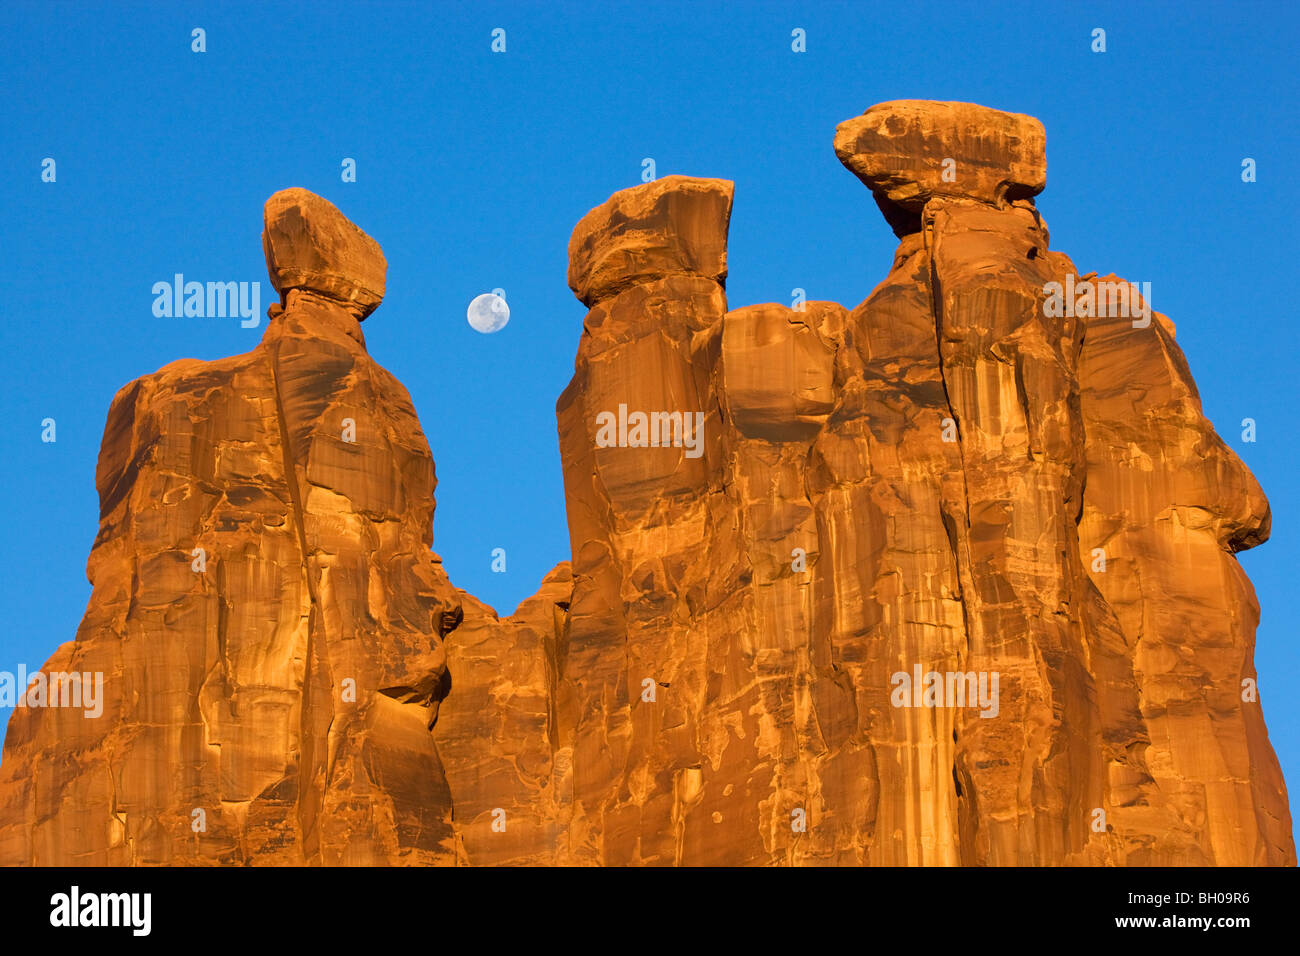 Near full moon along with the Three Gossips, Arches National Park, near Moab, Utah. Stock Photo